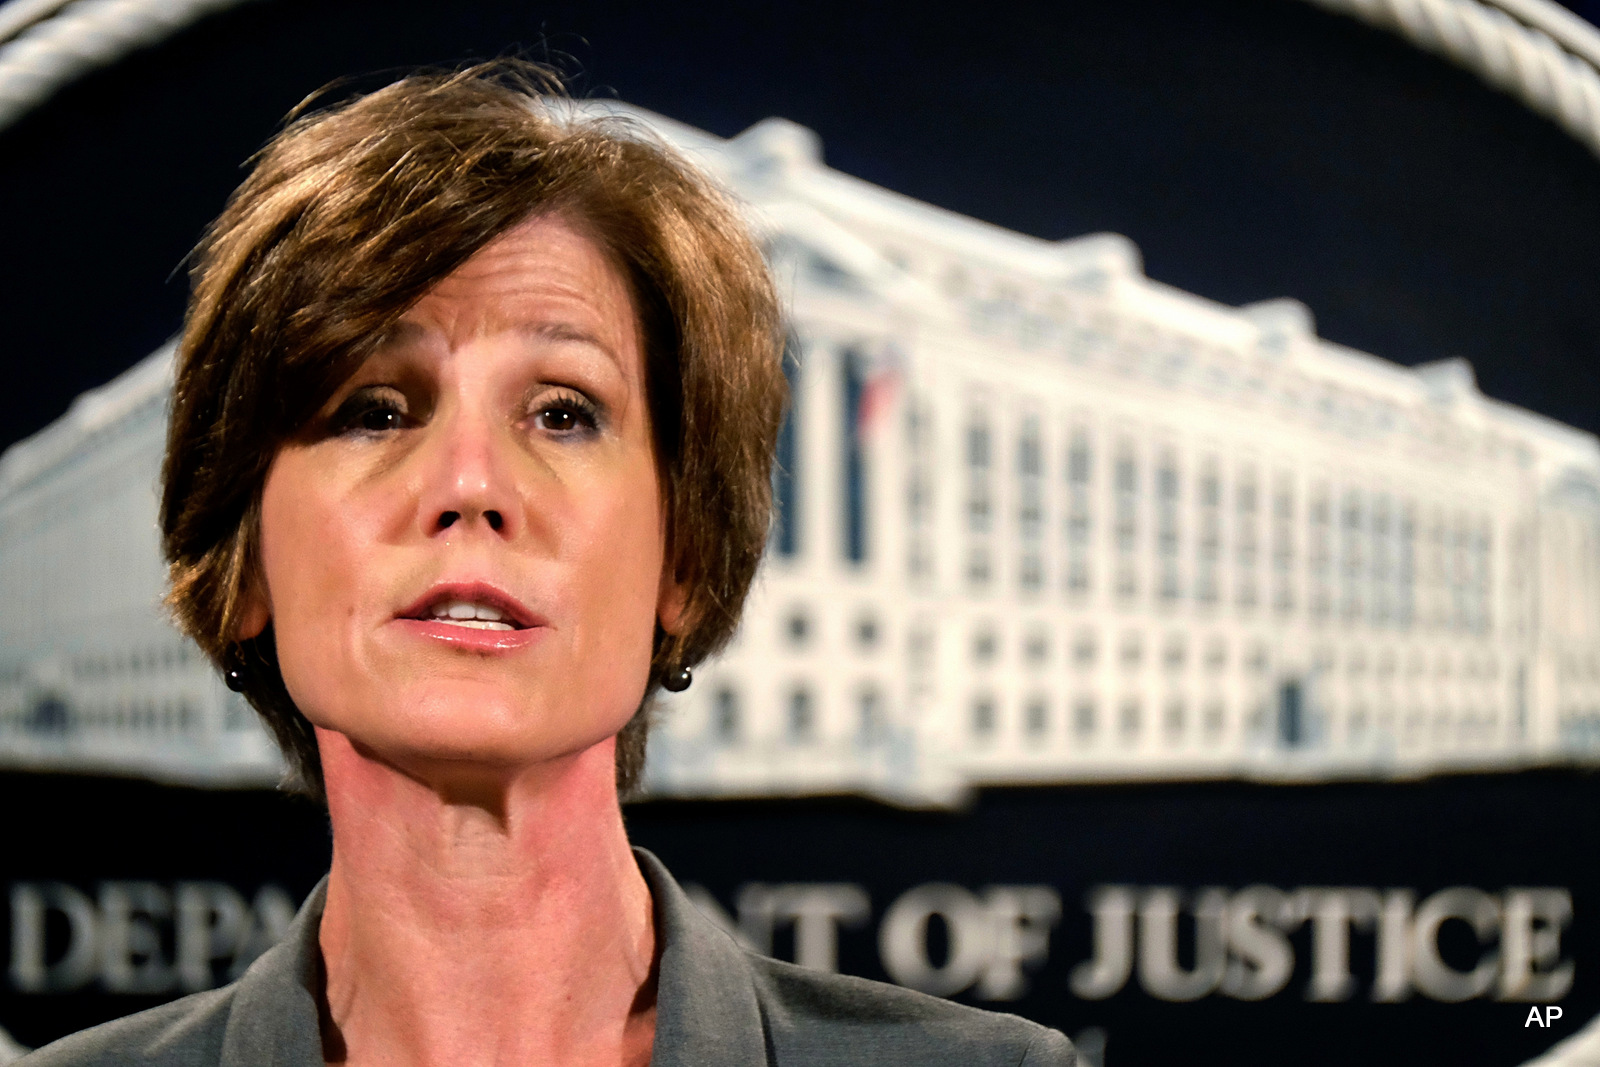 Deputy Attorney General Sally Yates speaks during a news conference at the Justice Department in Washington. The Justice Department says it's phasing out its relationships with private prisons after a recent audit found the private facilities have more safety and security problems than ones run by the government.